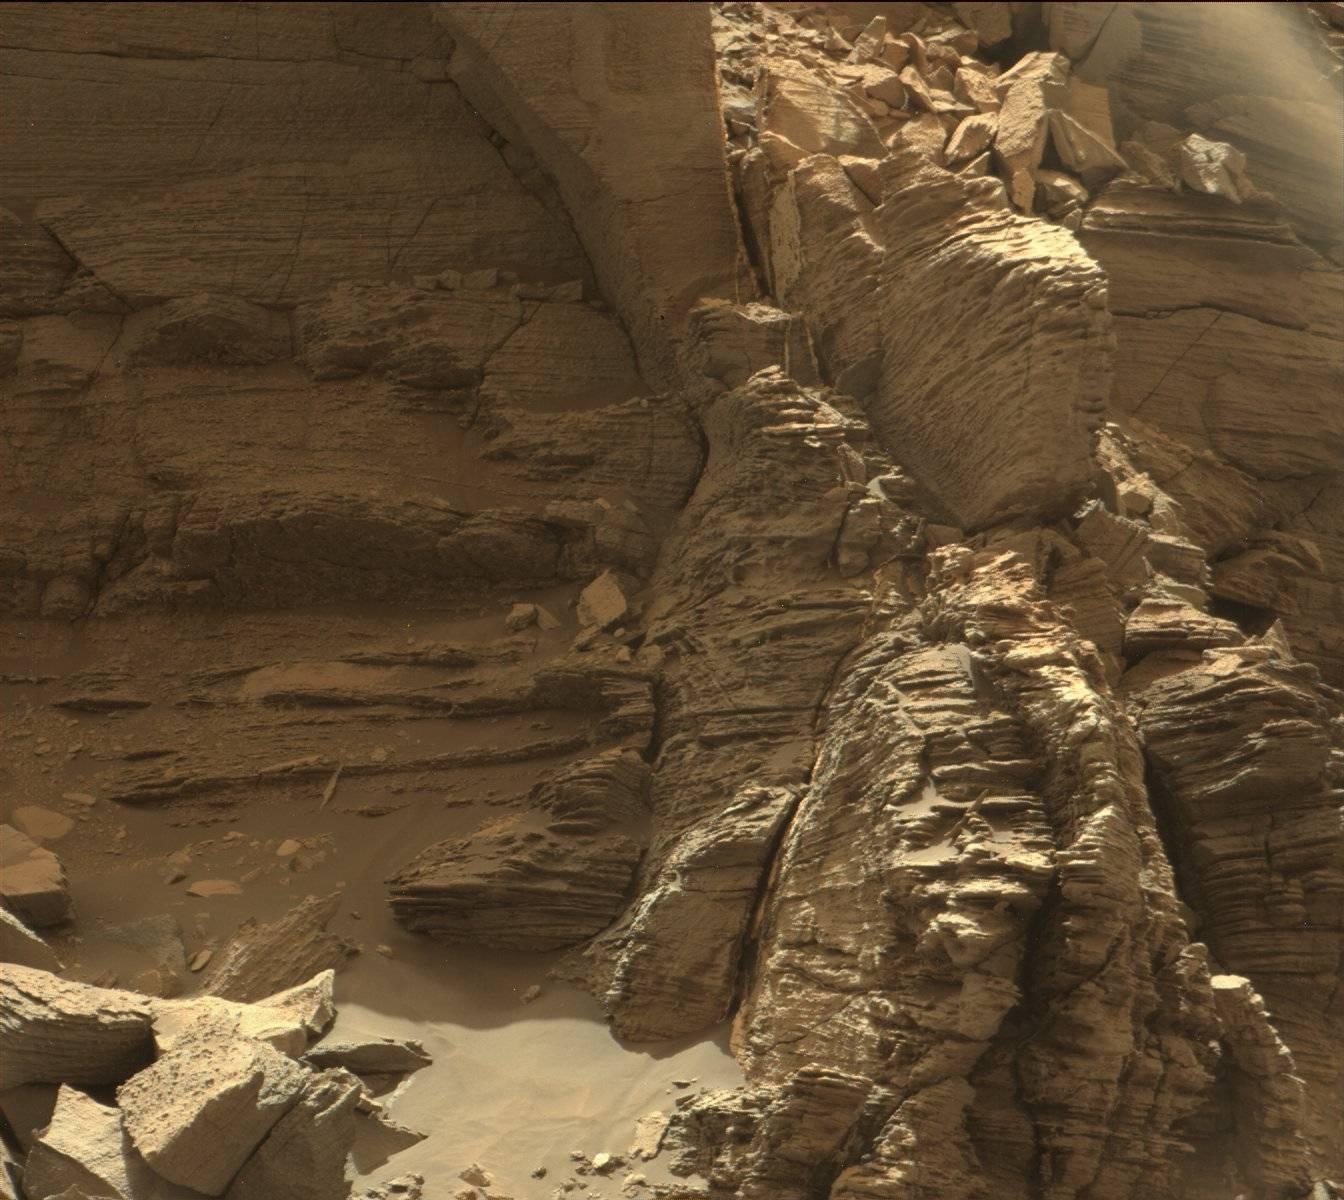 pictures from nasa mars - photo #46